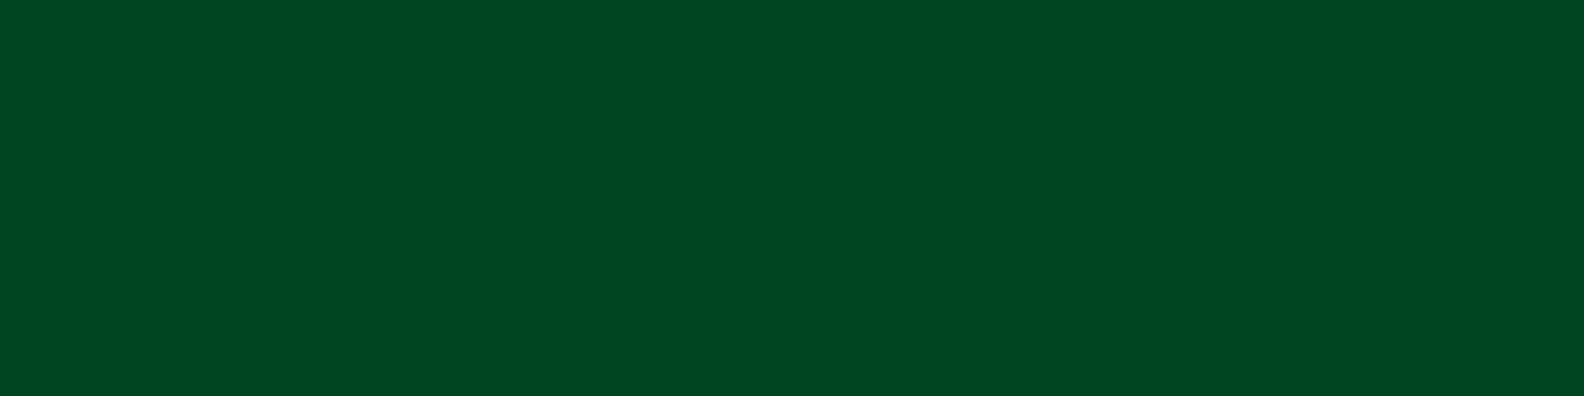 1584x396 Forest Green Traditional Solid Color Background